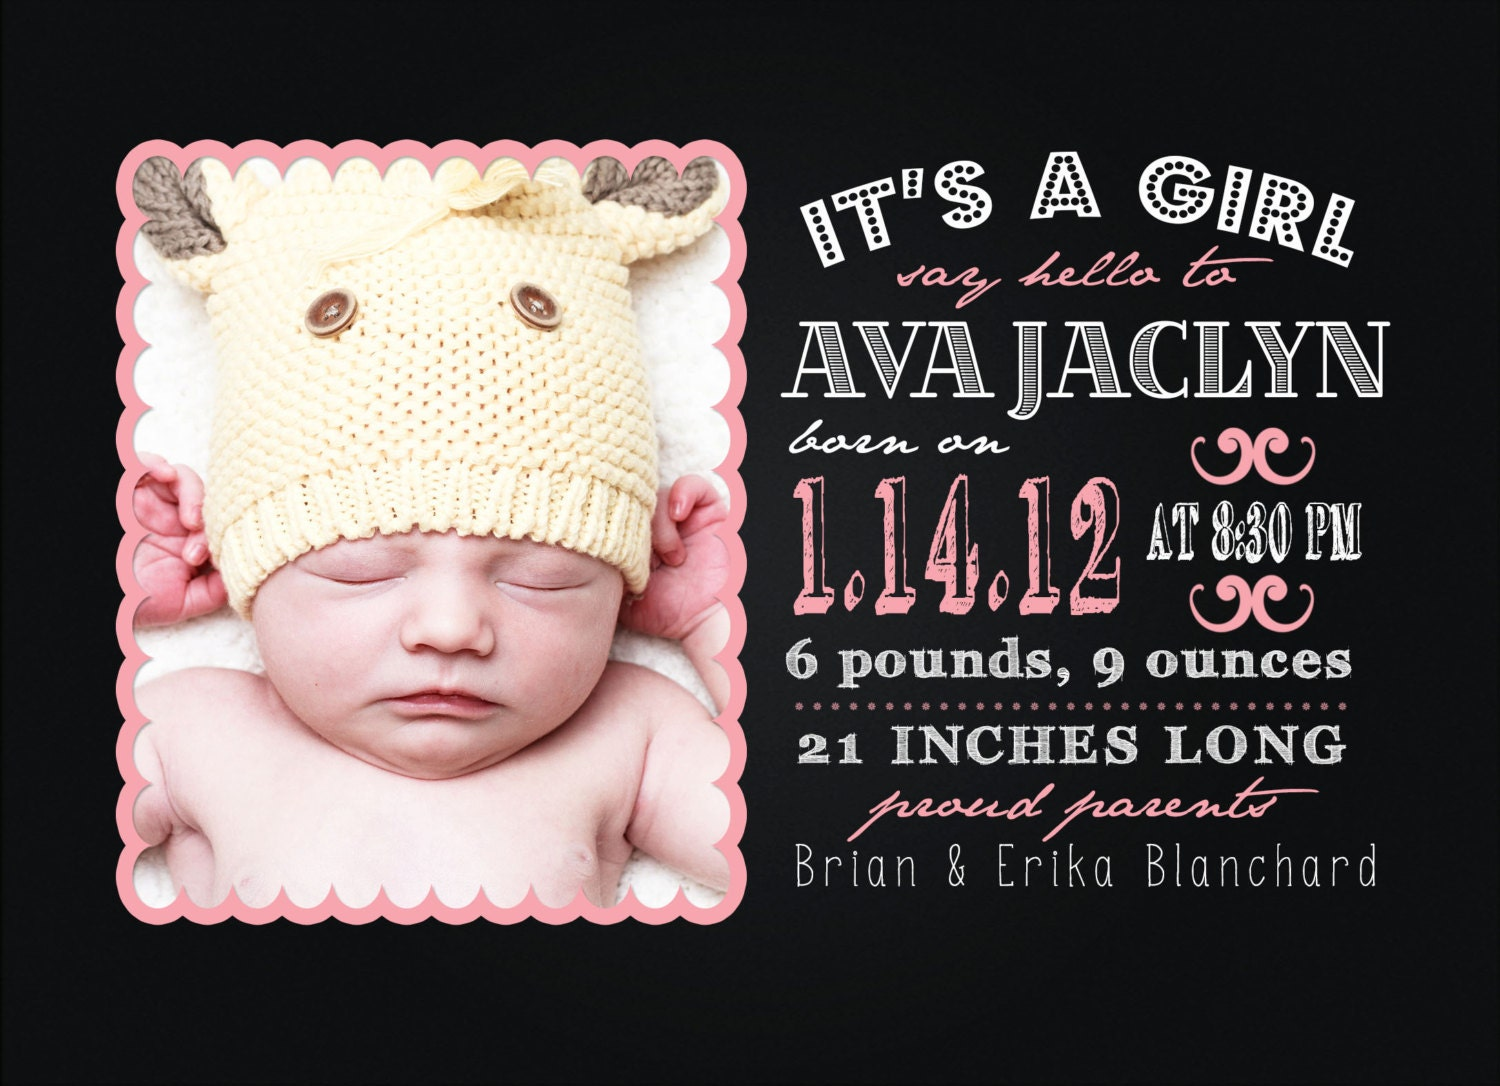 Custom Digital Baby Boy or Baby Girl Photo Birth Announcement, 5x7 PRINTABLE - BA5